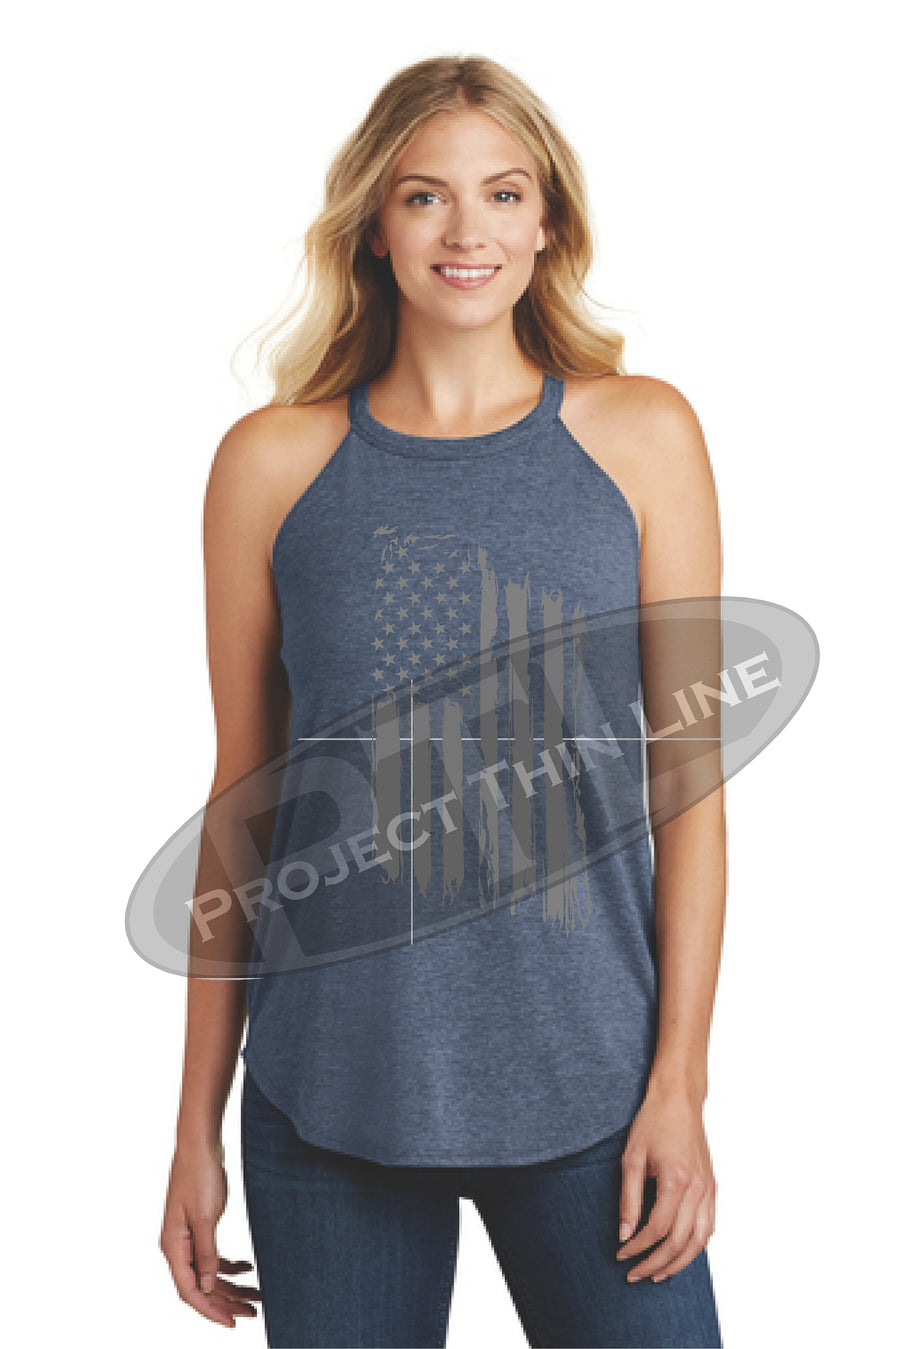 OD Green Tattered Tactical - Subdued American Flag Rocker Tank Top - FRONT